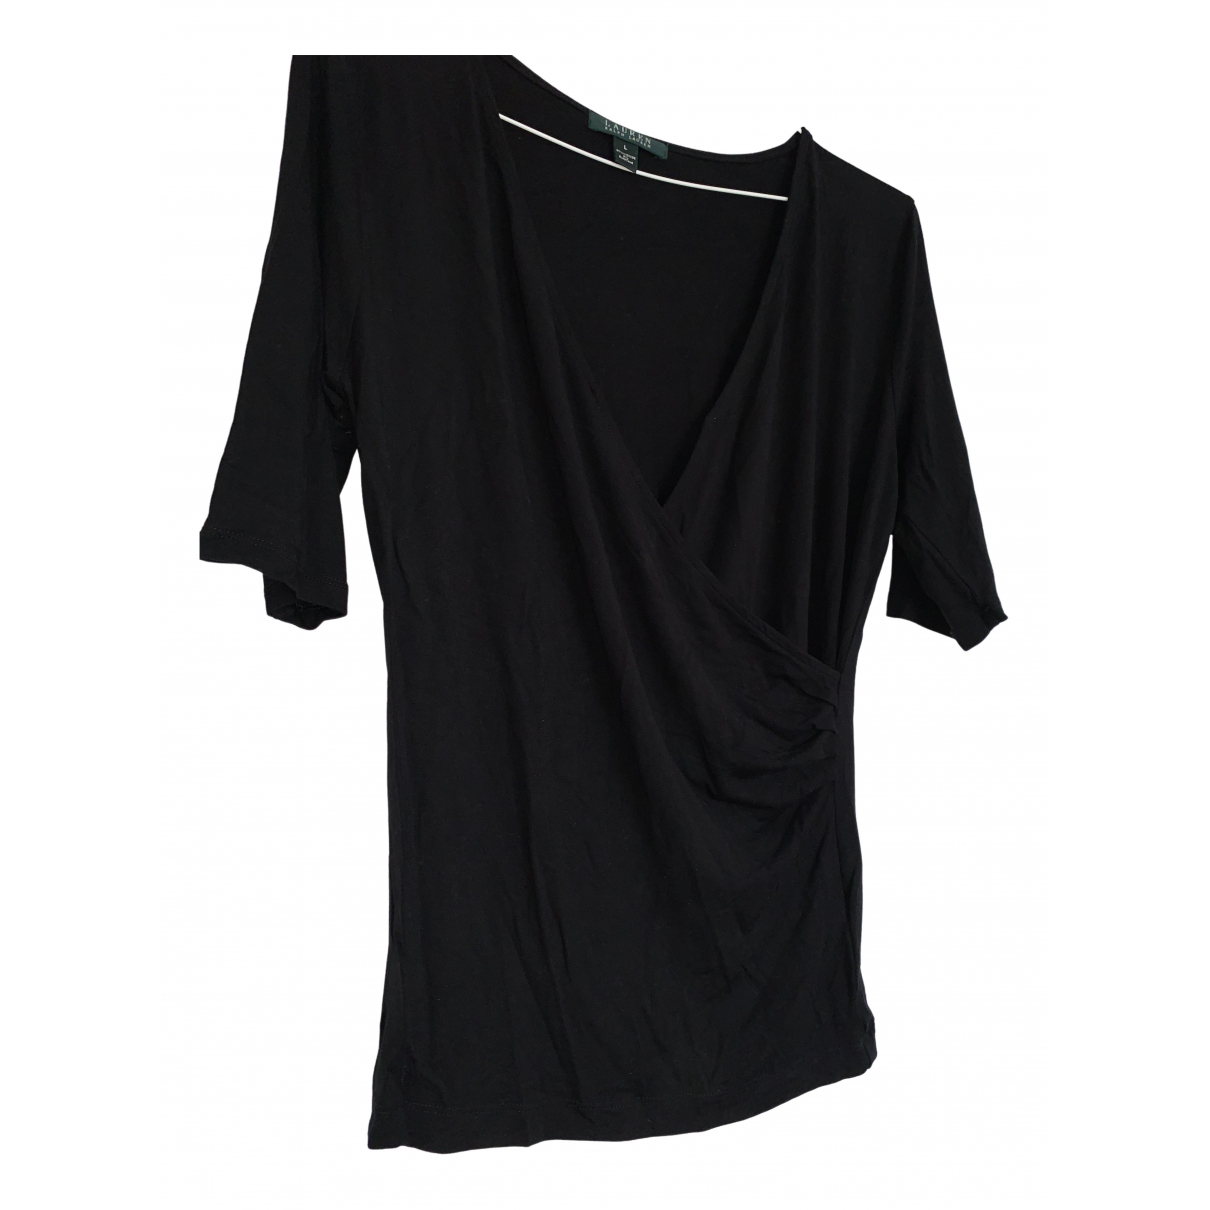 Lauren Ralph Lauren \N Black  top for Women L International